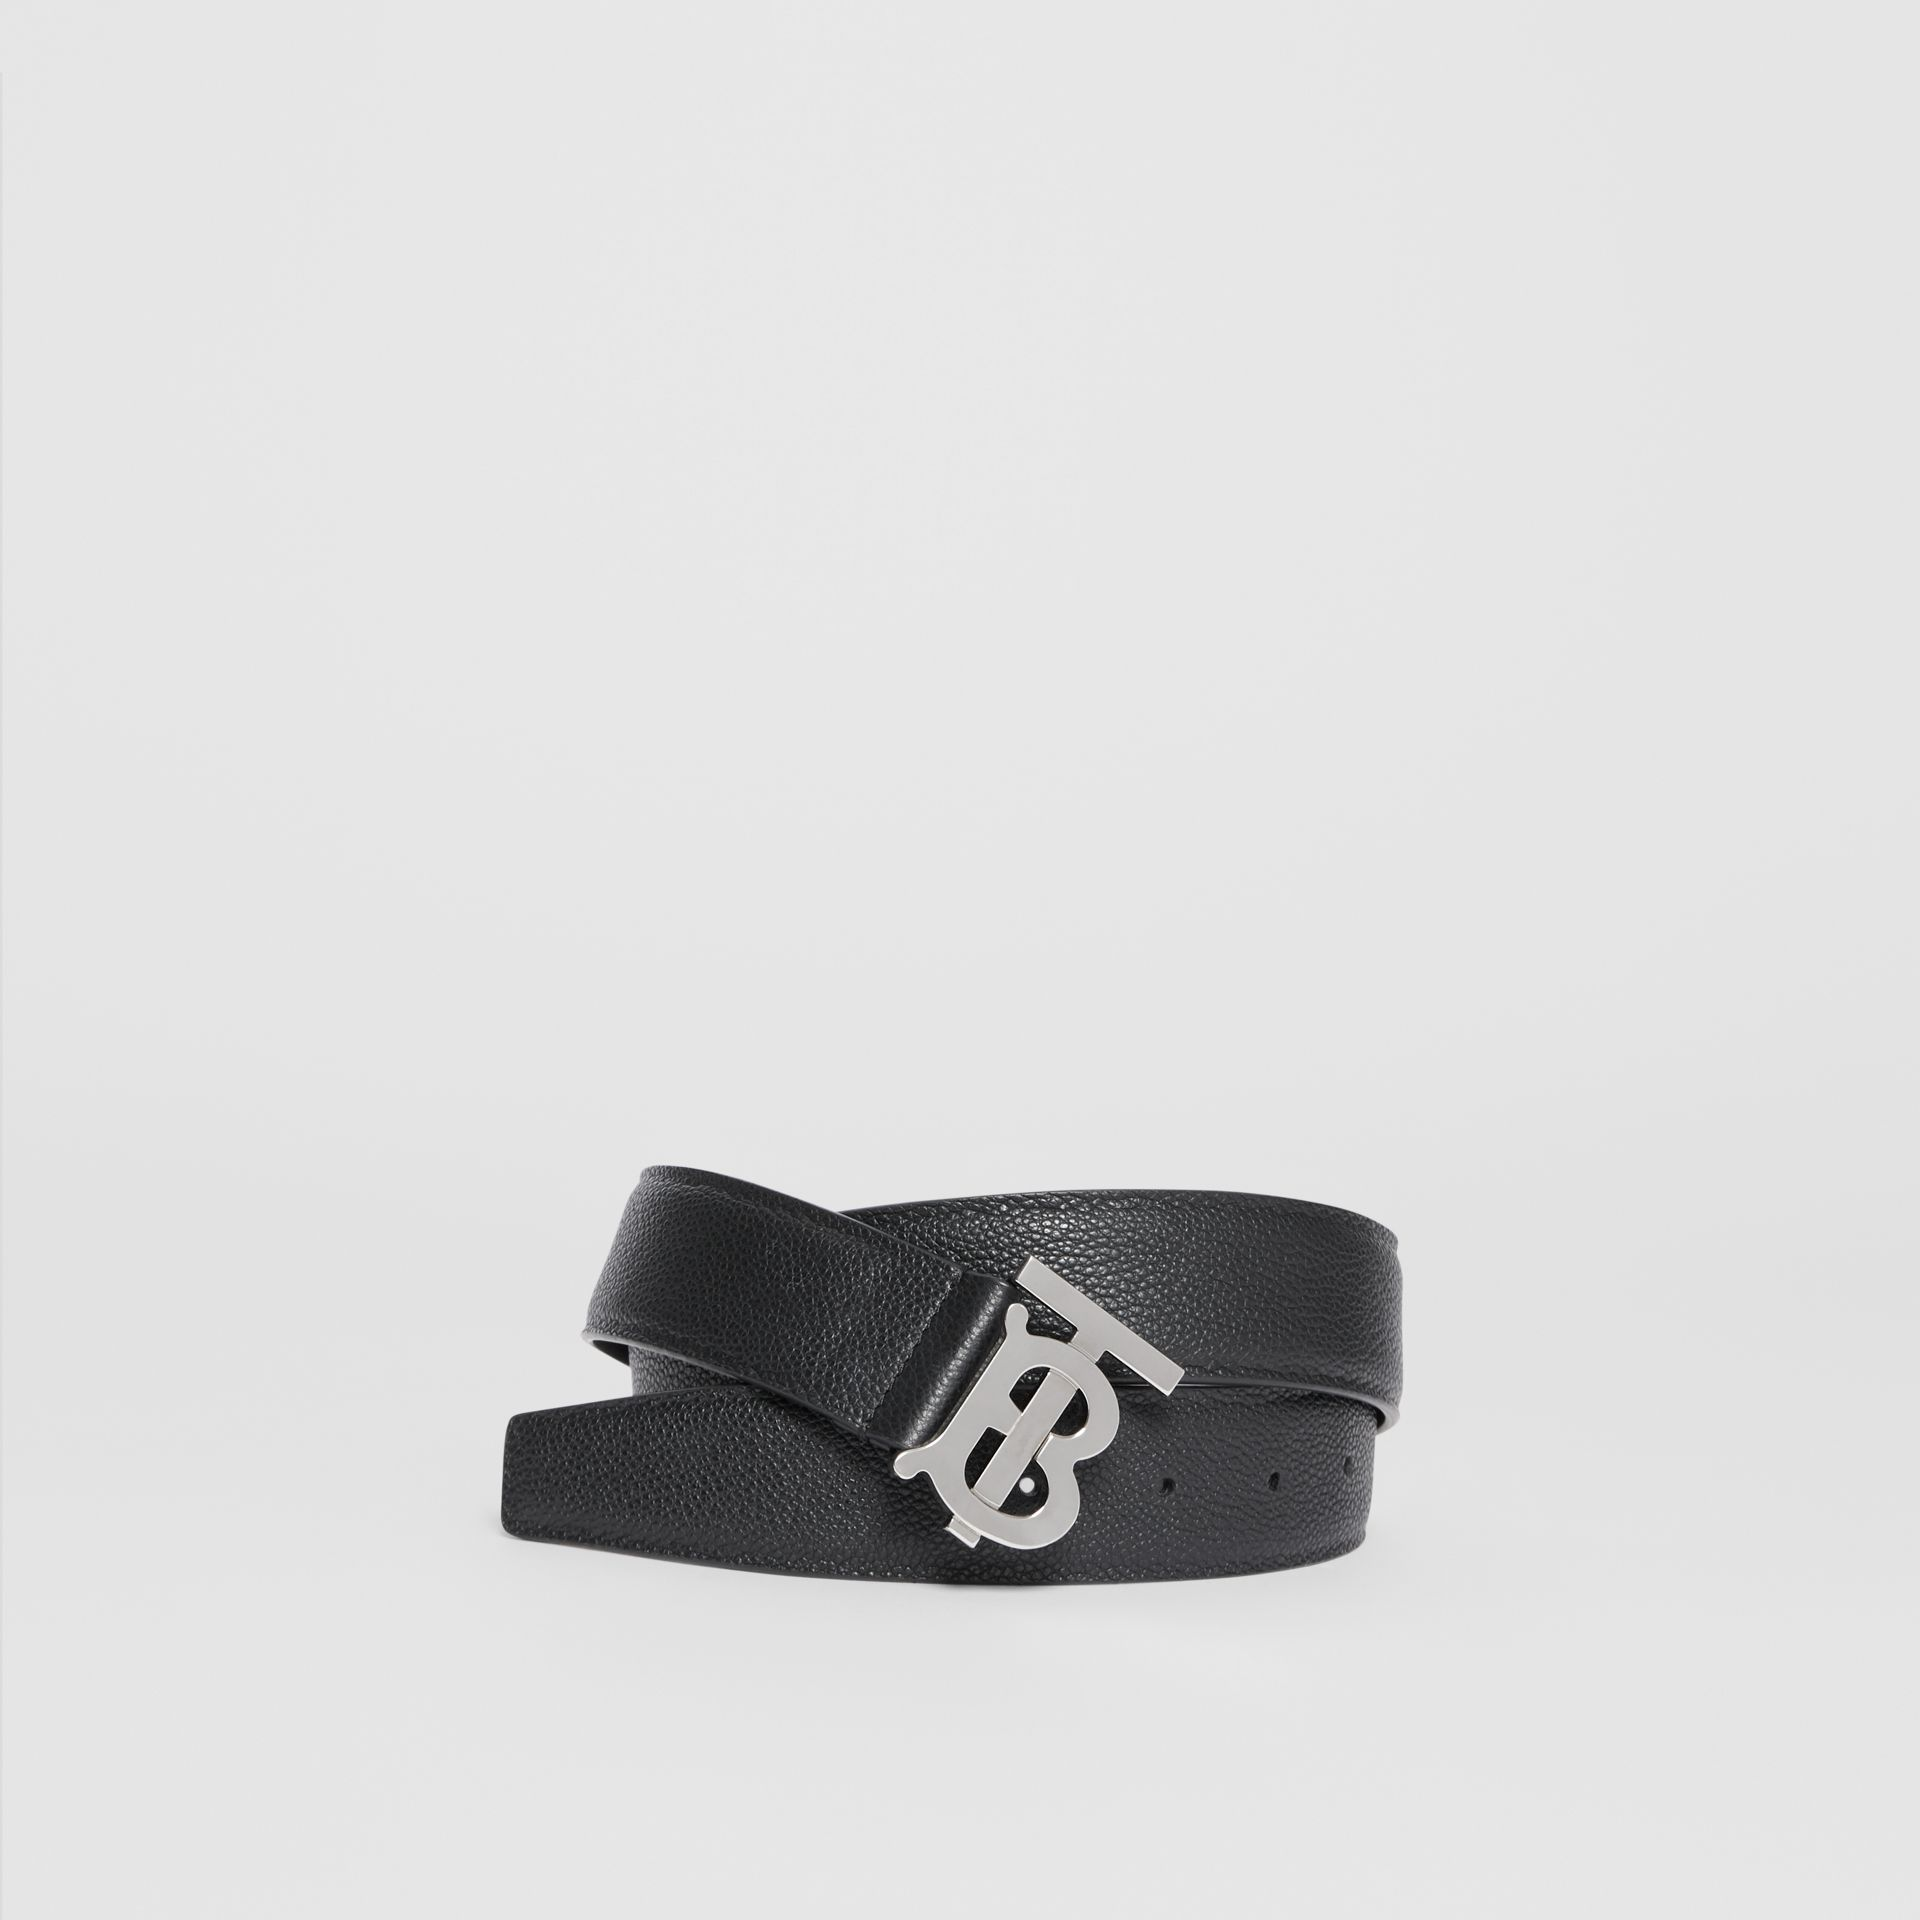 Monogram Motif Grainy Leather Belt in Black - Men | Burberry - gallery image 0